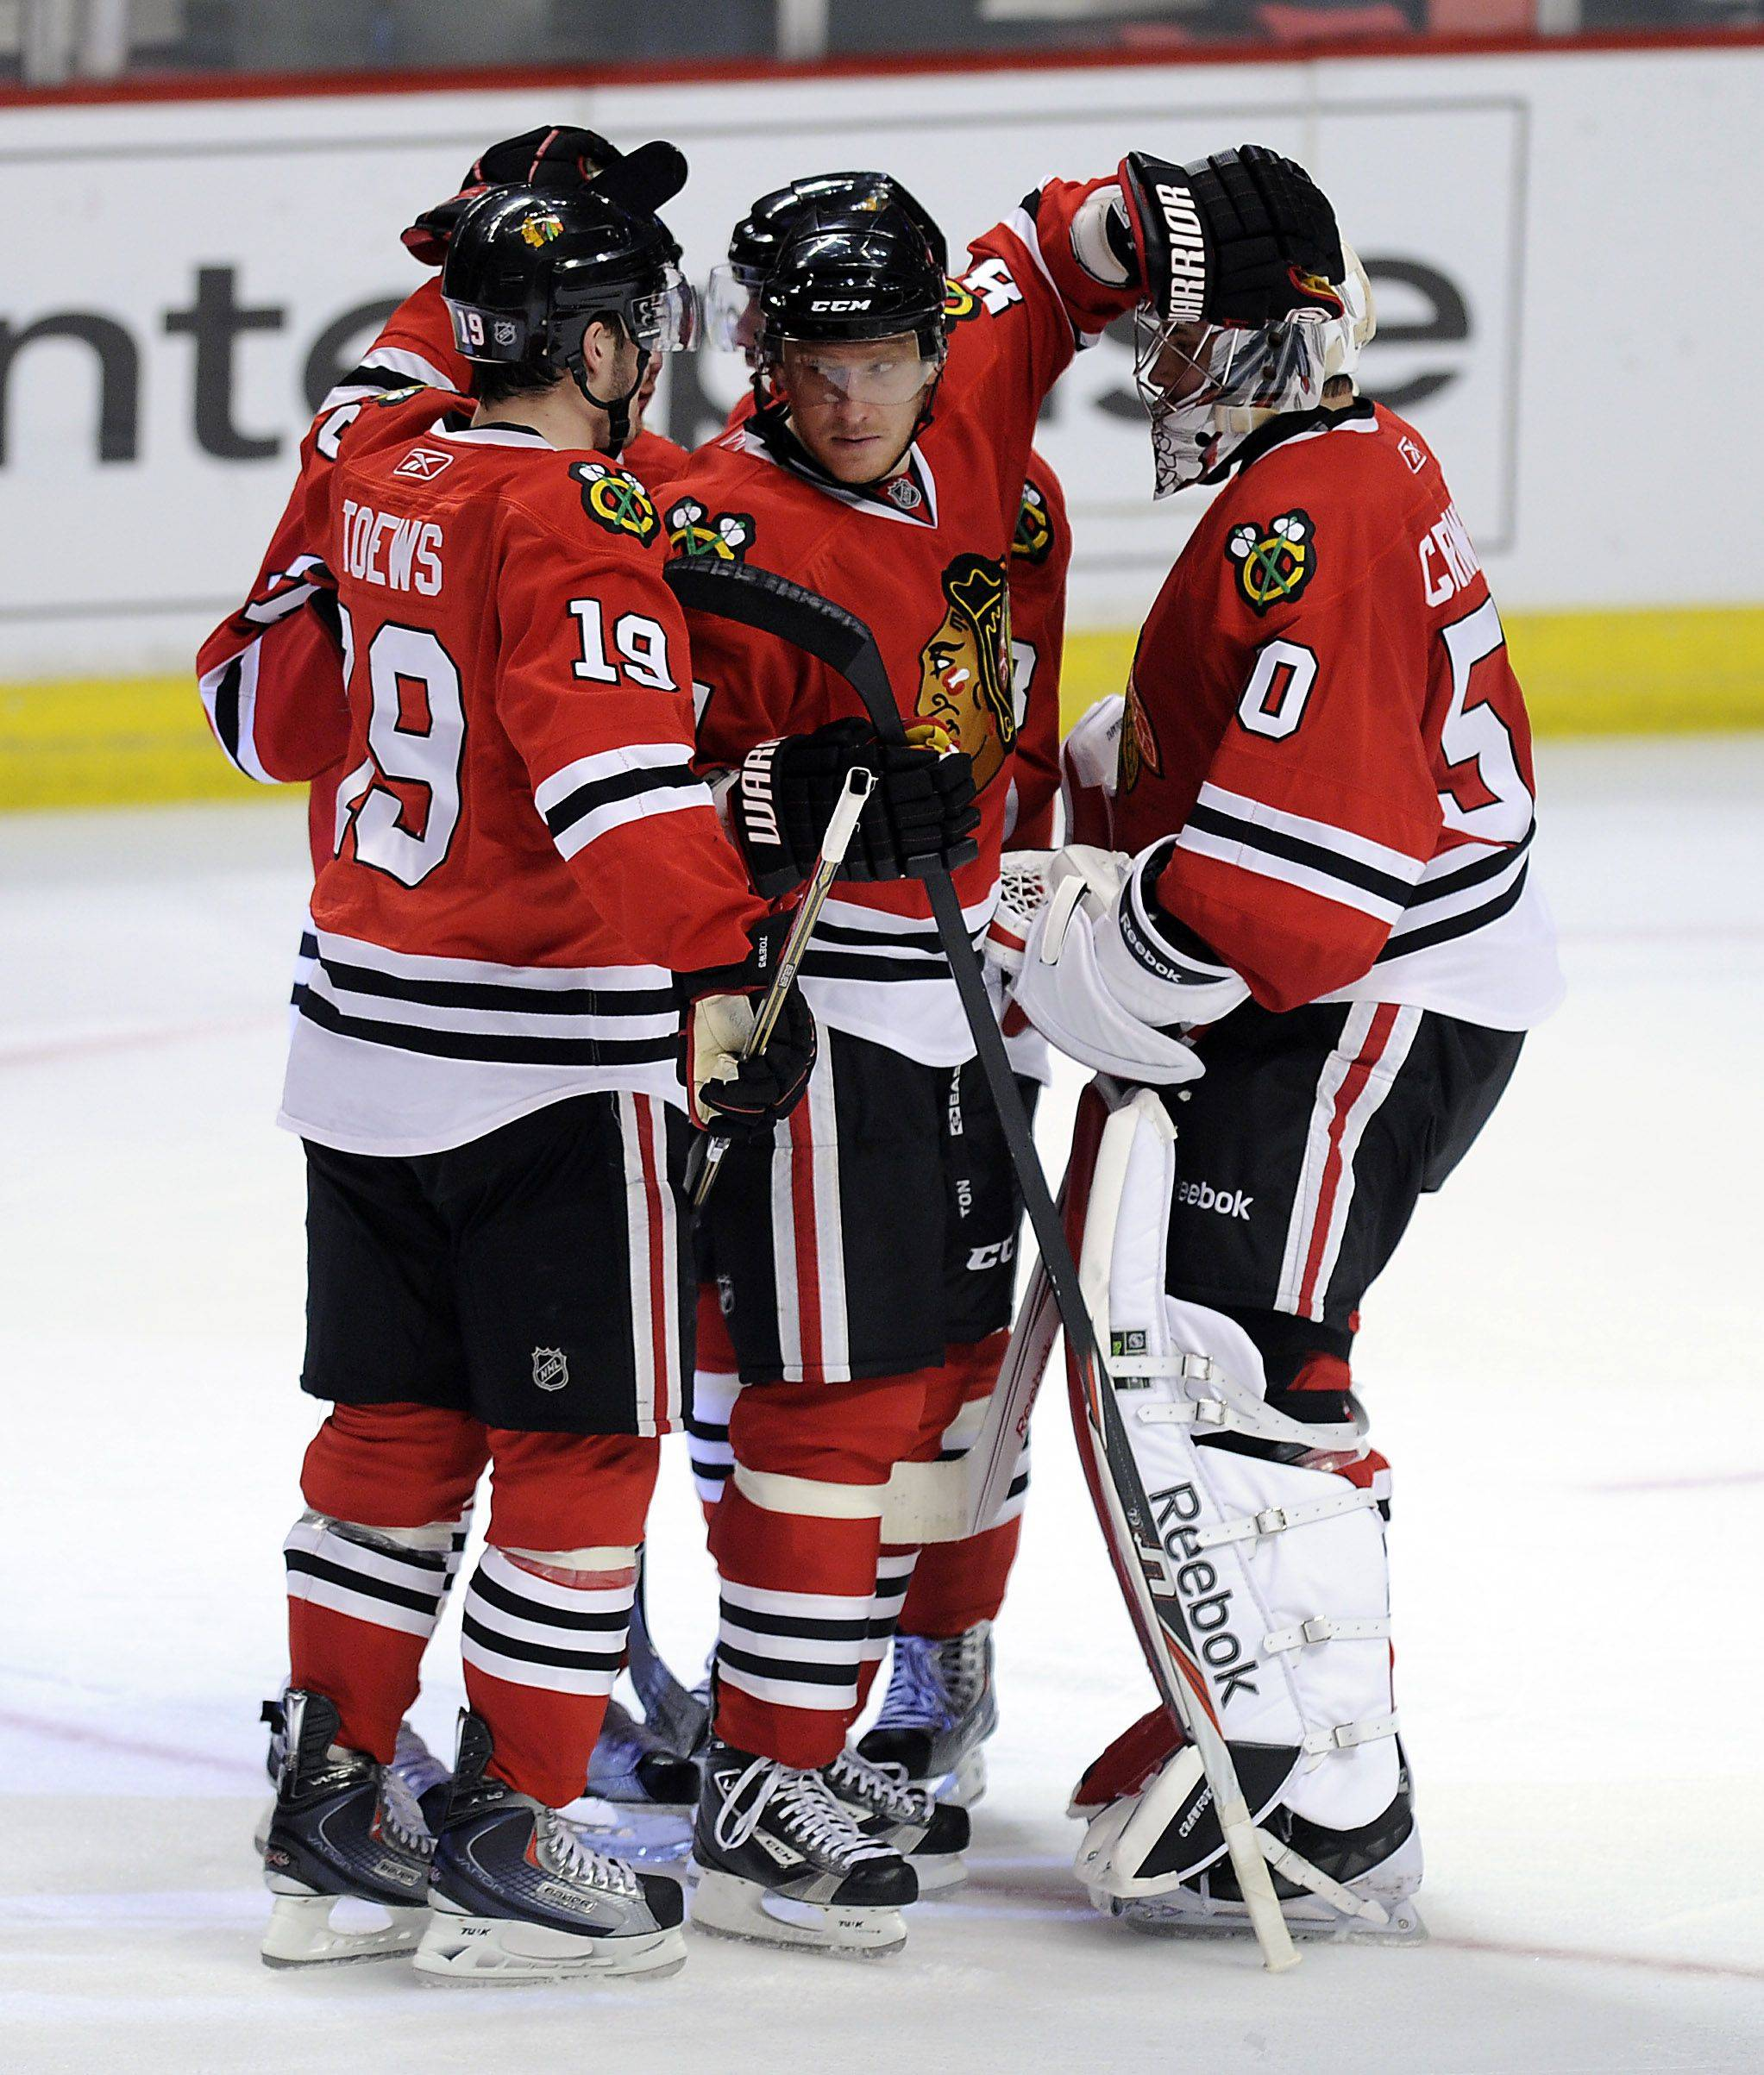 Mark Welsh/mwelsh@dailyherald.comBlackhawks Marian Hossa celebrates with the rest of his teammates after beating the Canucks 7-2 in game 4 of the NHL playoff game at the United Center in Chicago on Tuesday.